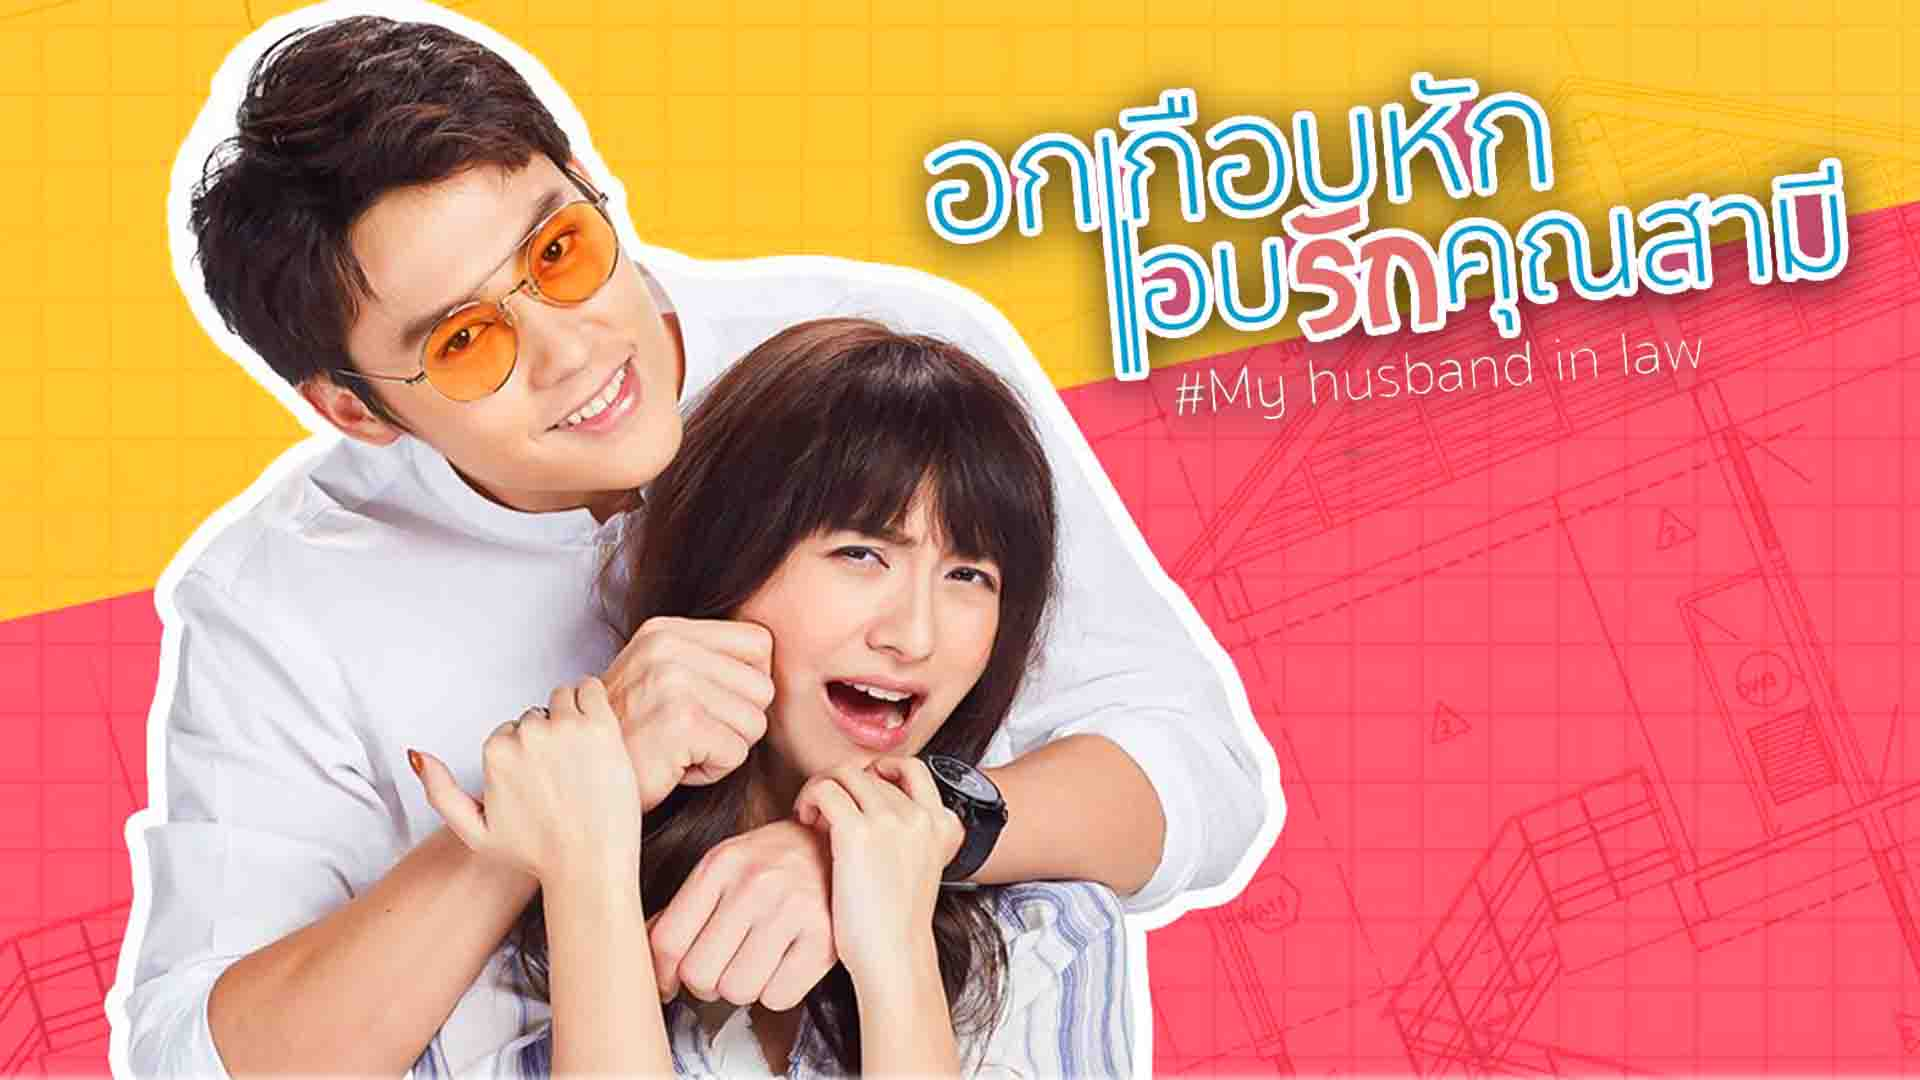 Ok Keub Hak Ab Ruk Khun Samee/My Husband in Law: 1×15